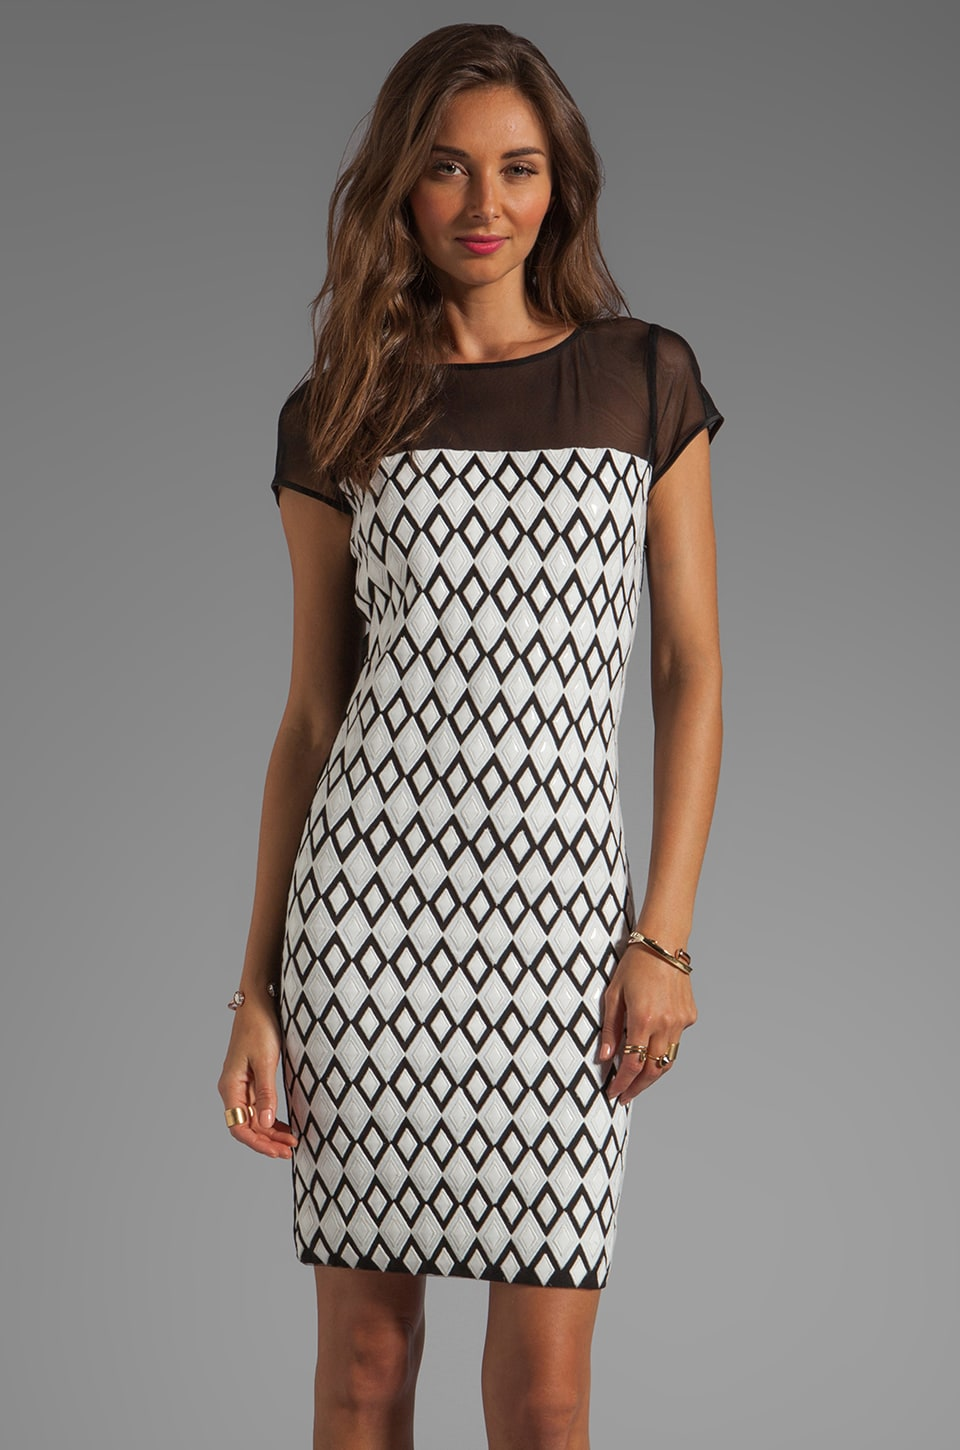 Catherine Malandrino Cut Out Mesh Dress in Black/White